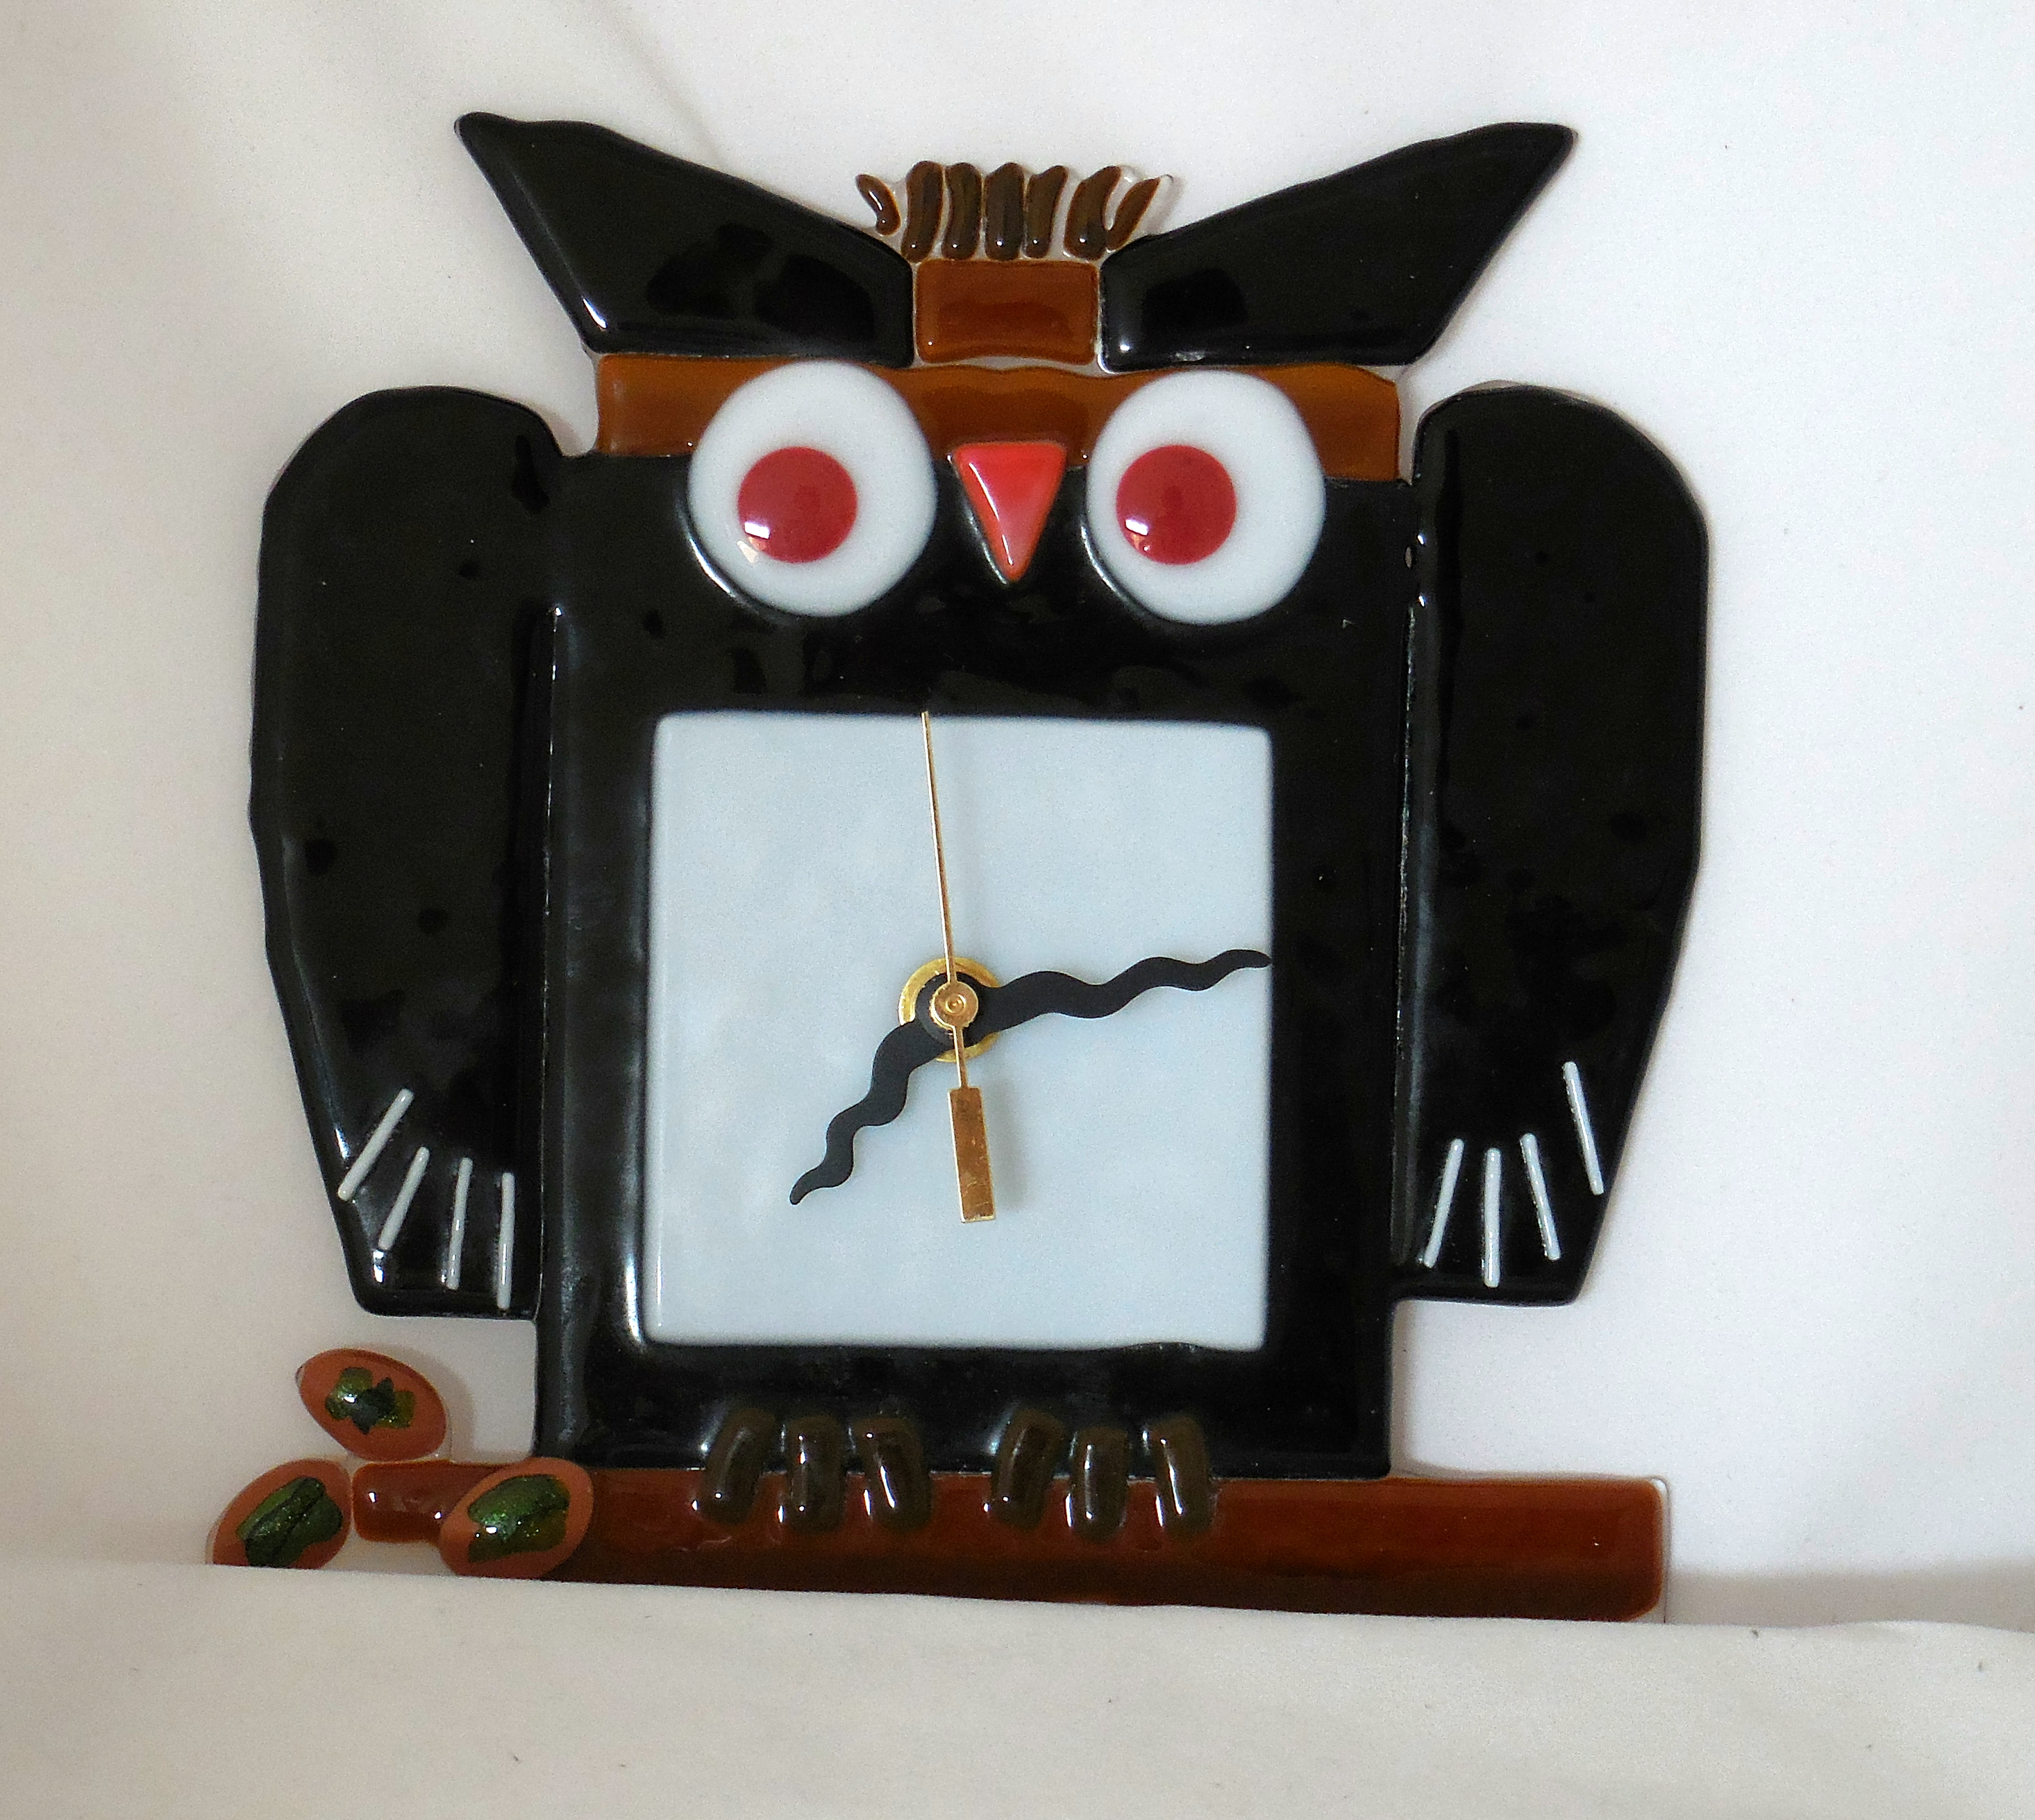 Who Gives a Hoot What Time It Is